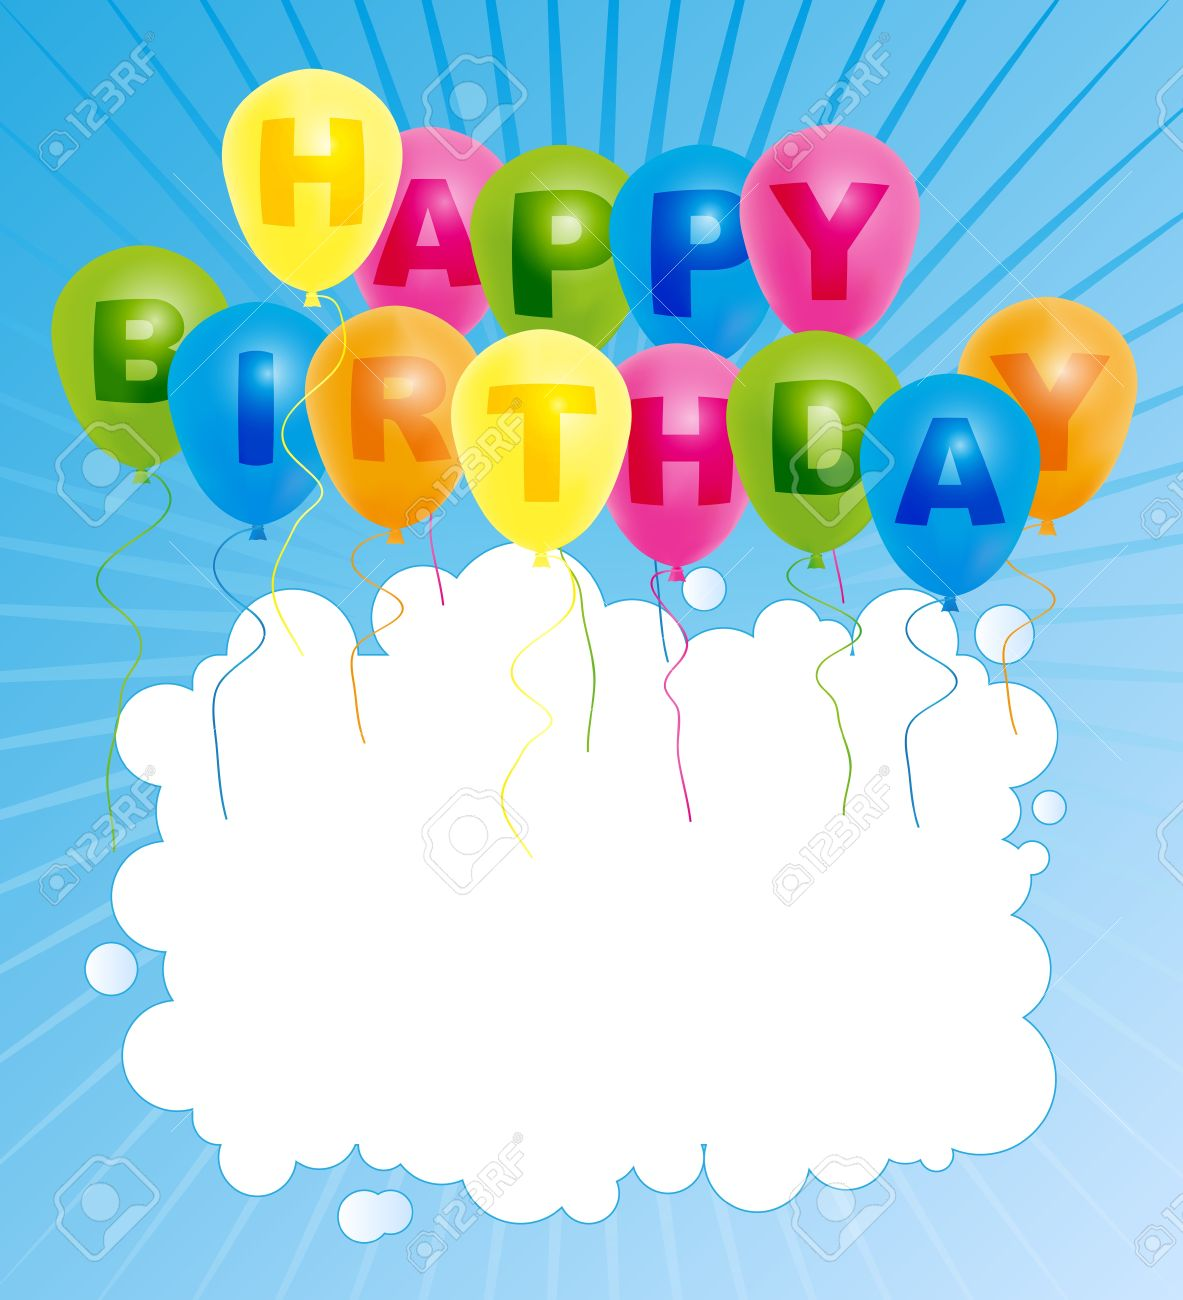 happy bday sign ; 17296558-happy-birthday-card-color-balloons-with-with-happy-birthday-sign